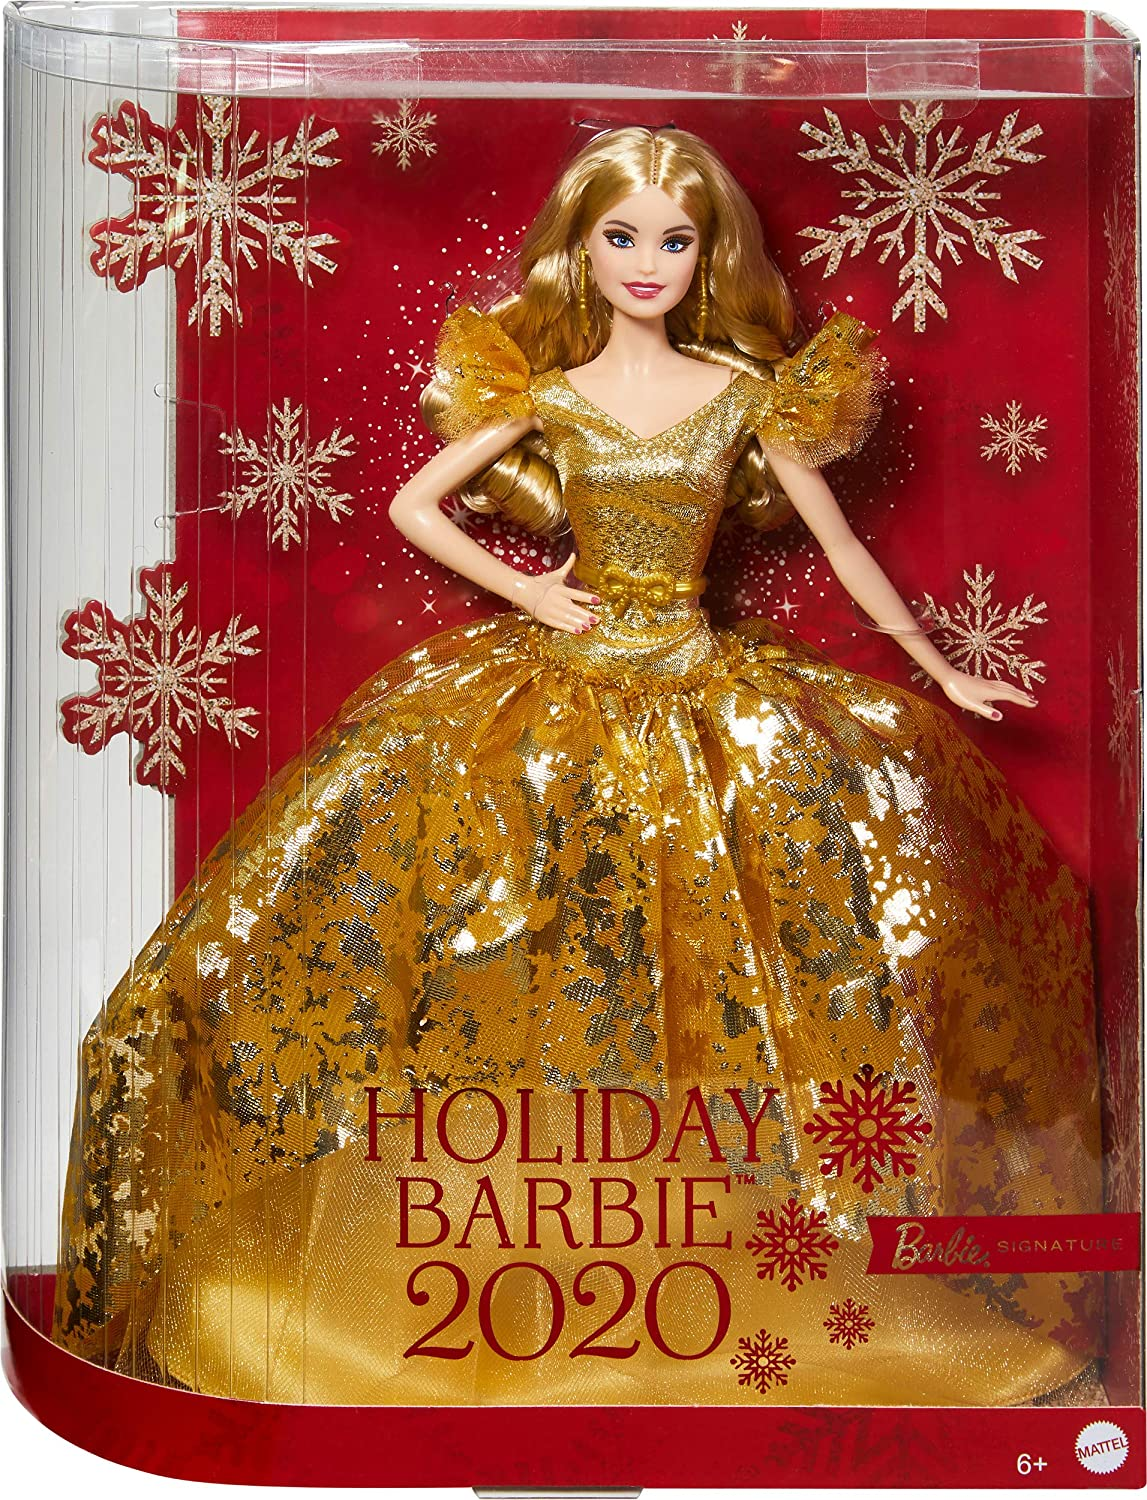 Christmas Barbie 2020 Amazon.com: Barbie Signature 2020 Holiday Barbie Doll (12 inch